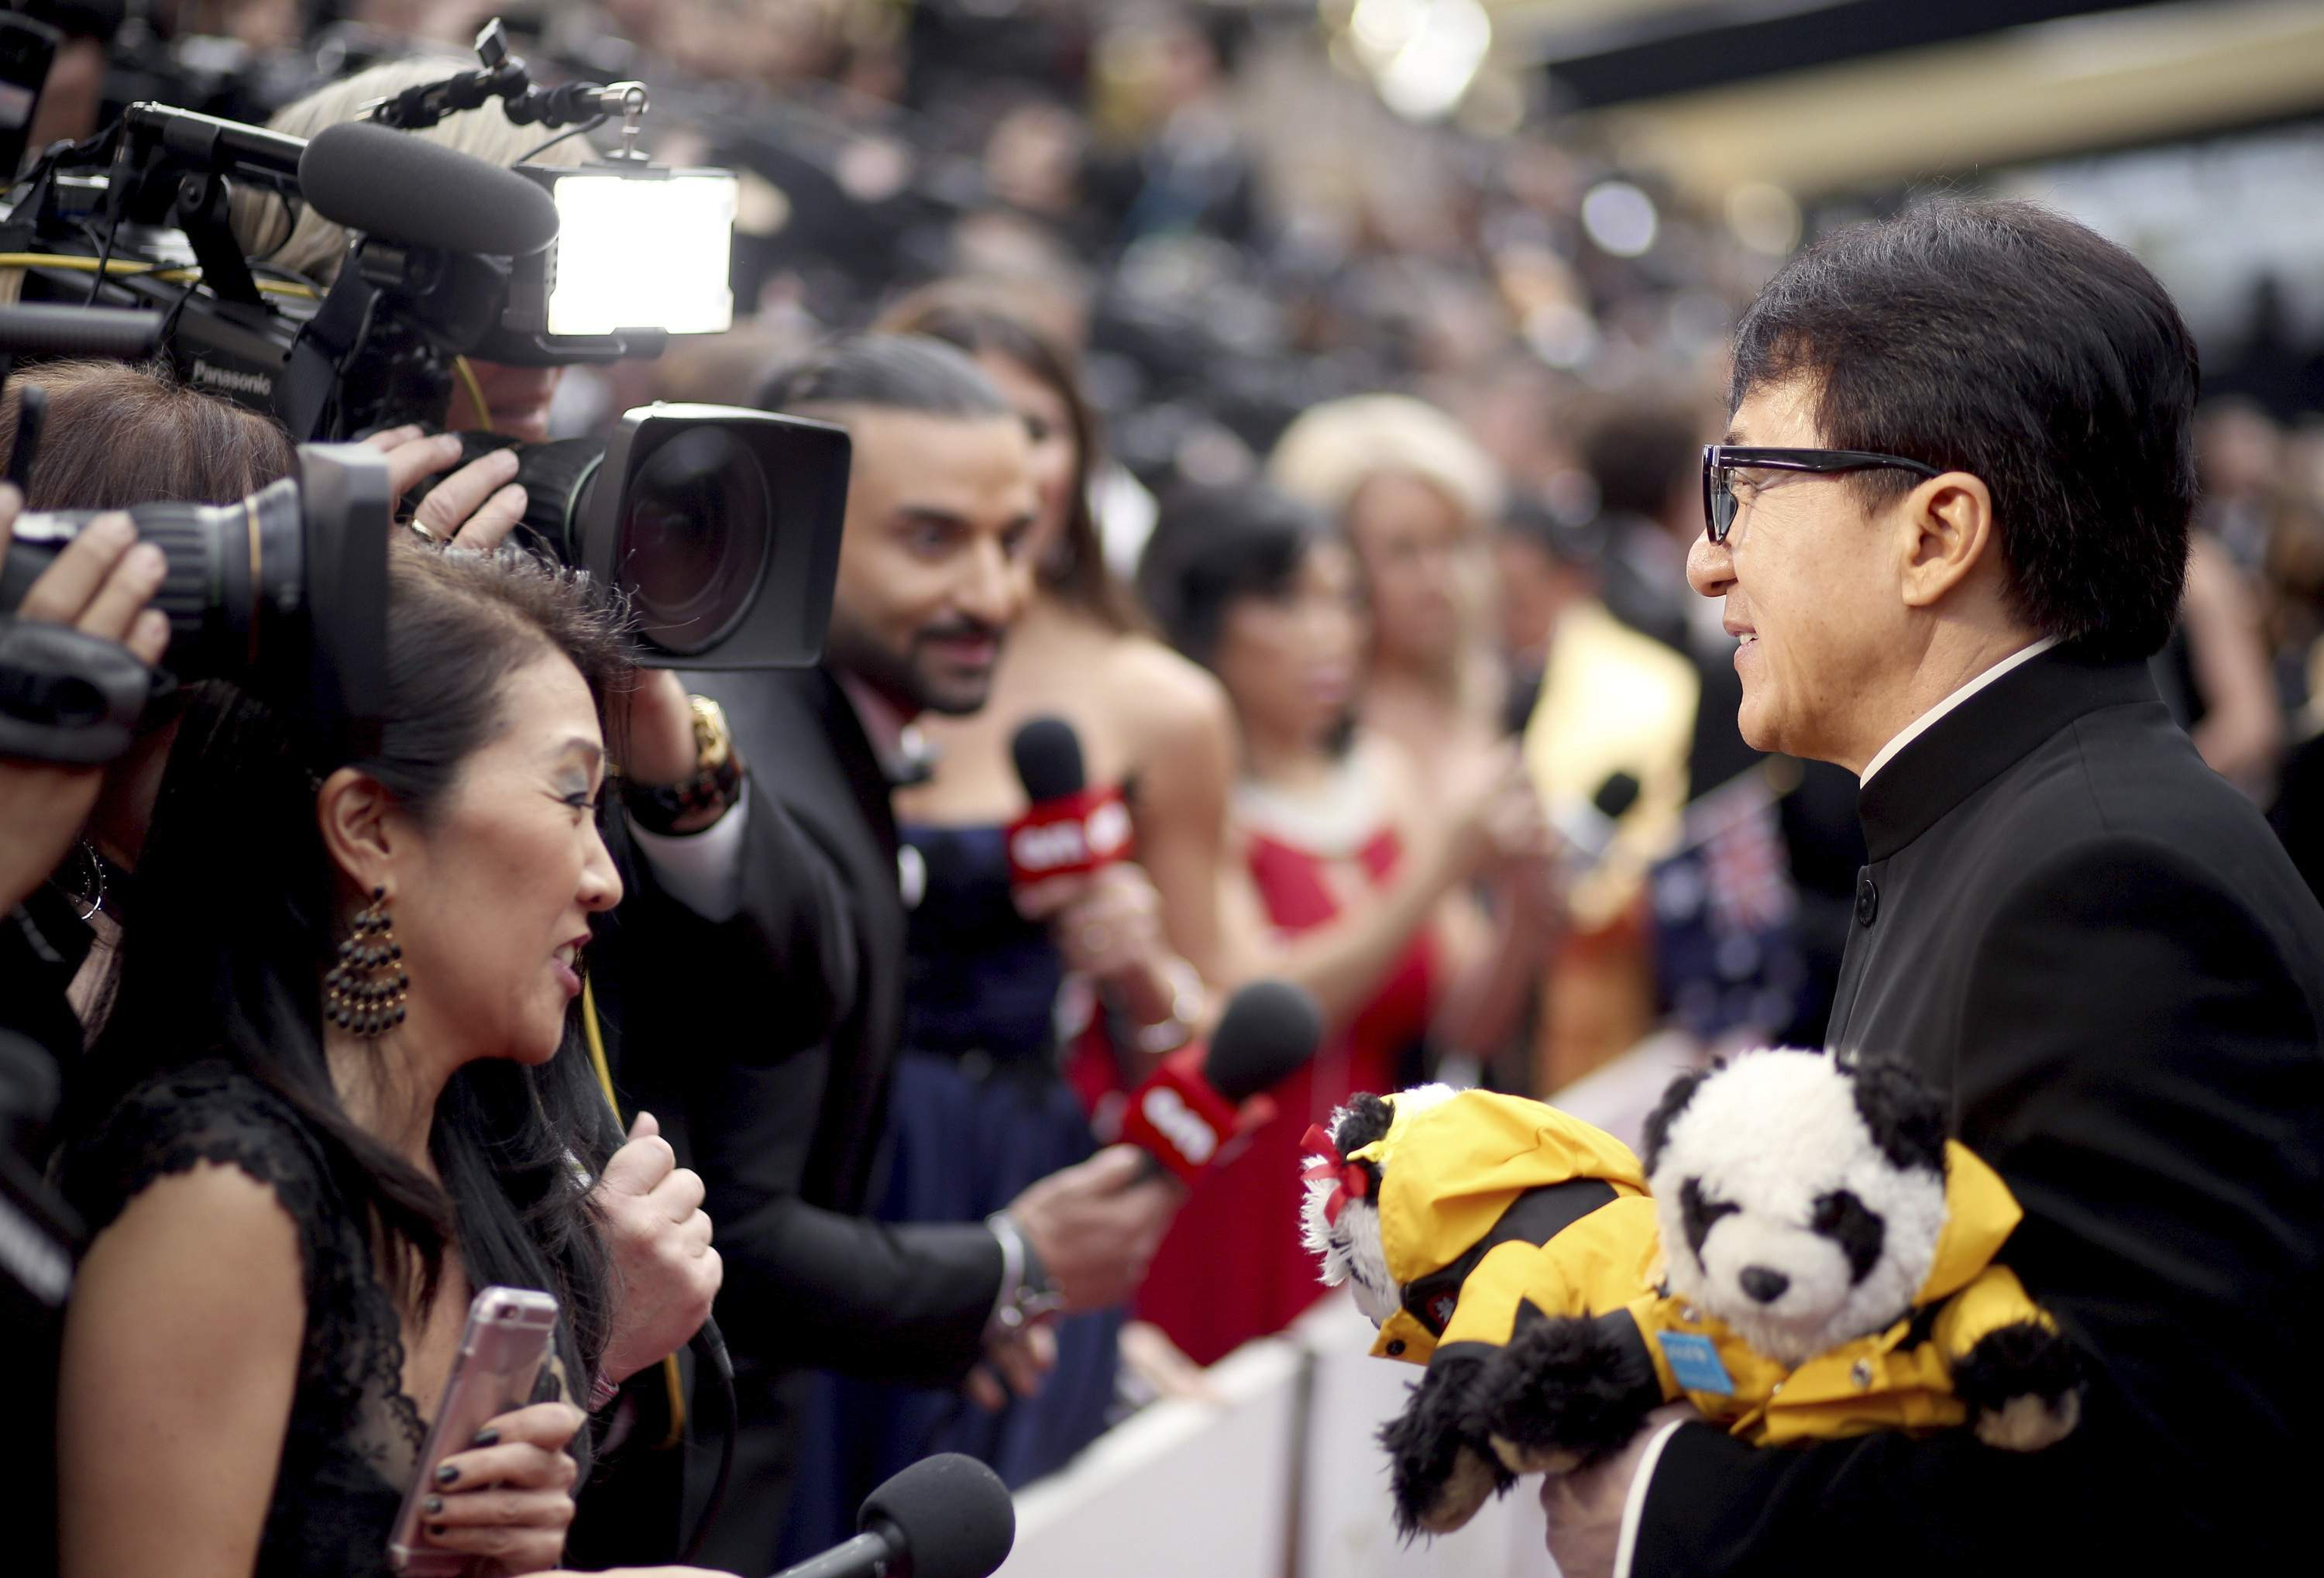 Jackie Chan greets the press at the Oscars on Sunday, Feb. 26, 2017, at the Dolby Theatre in Los Angeles. THE ASSOCIATED PRESS